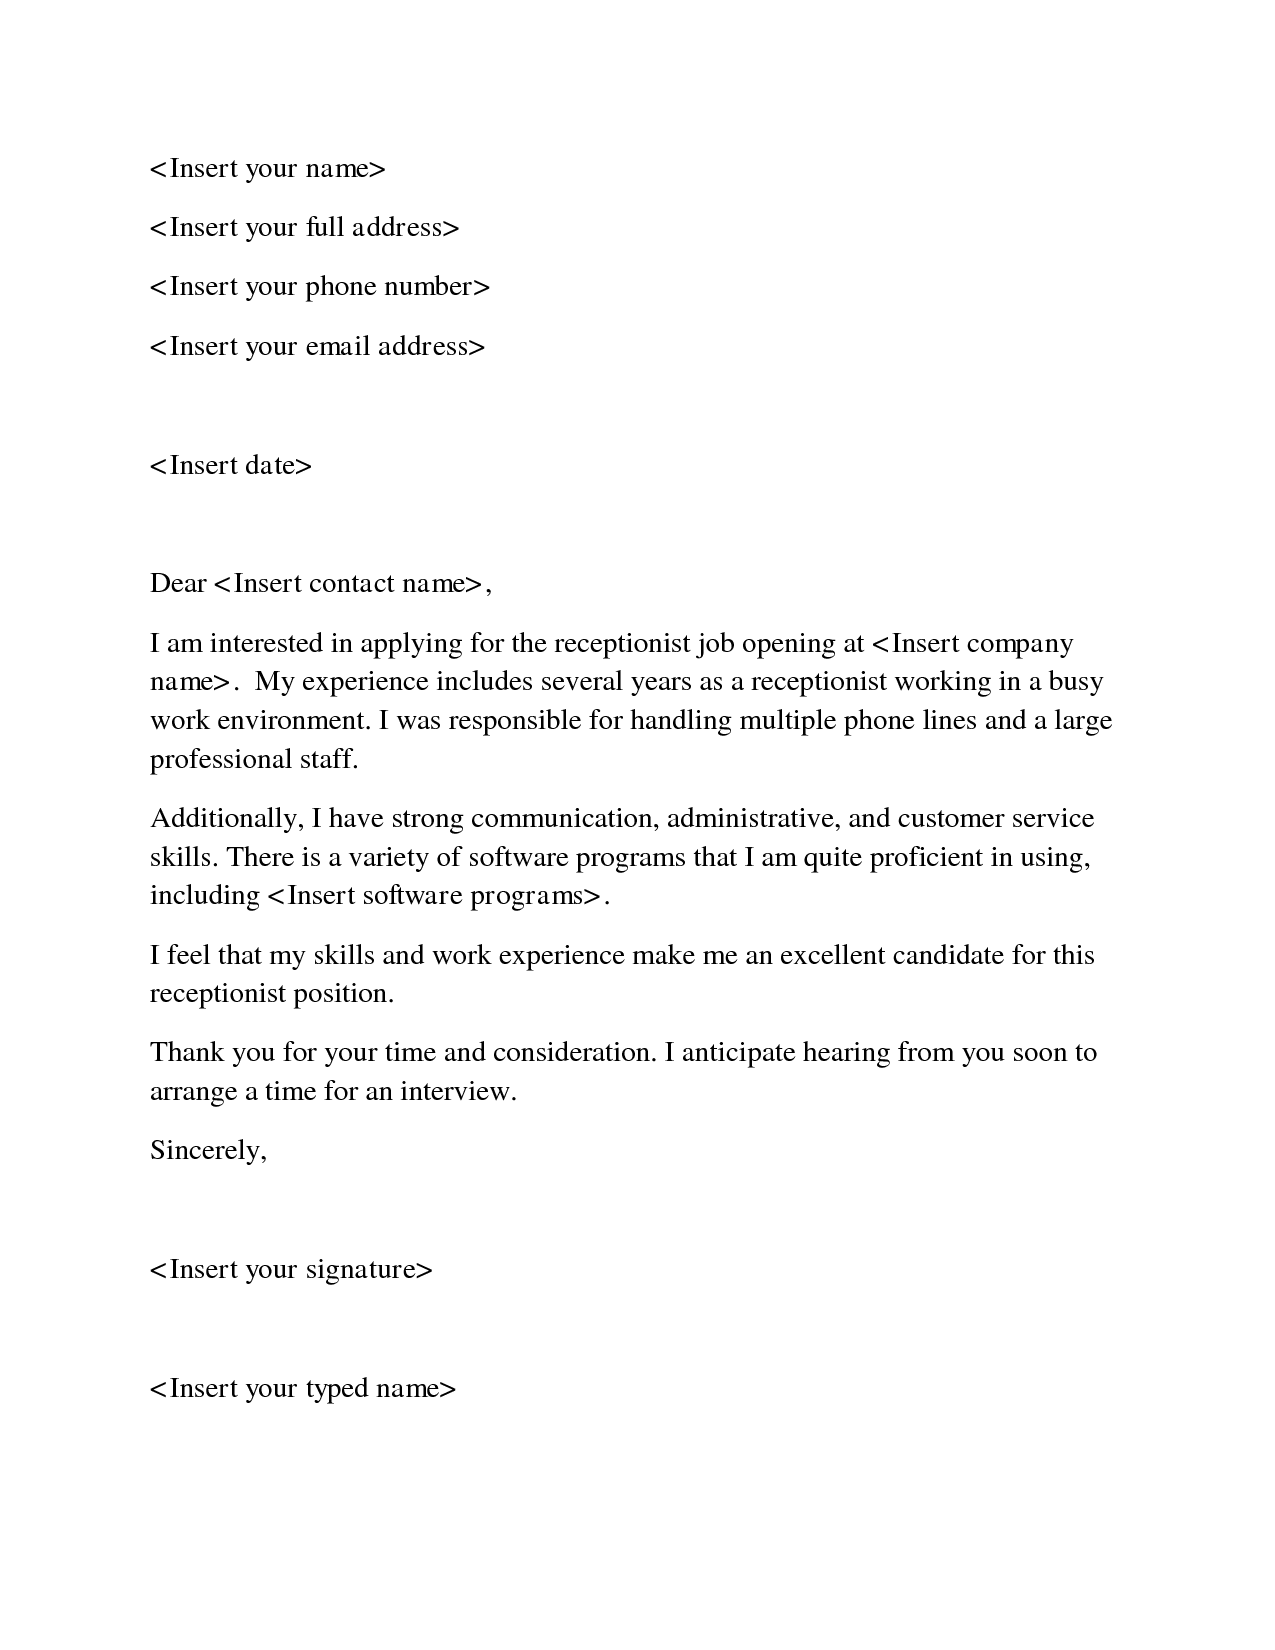 cover letter help receptionist resume top essay writingcover cover letter help receptionist resume top essay writingcover